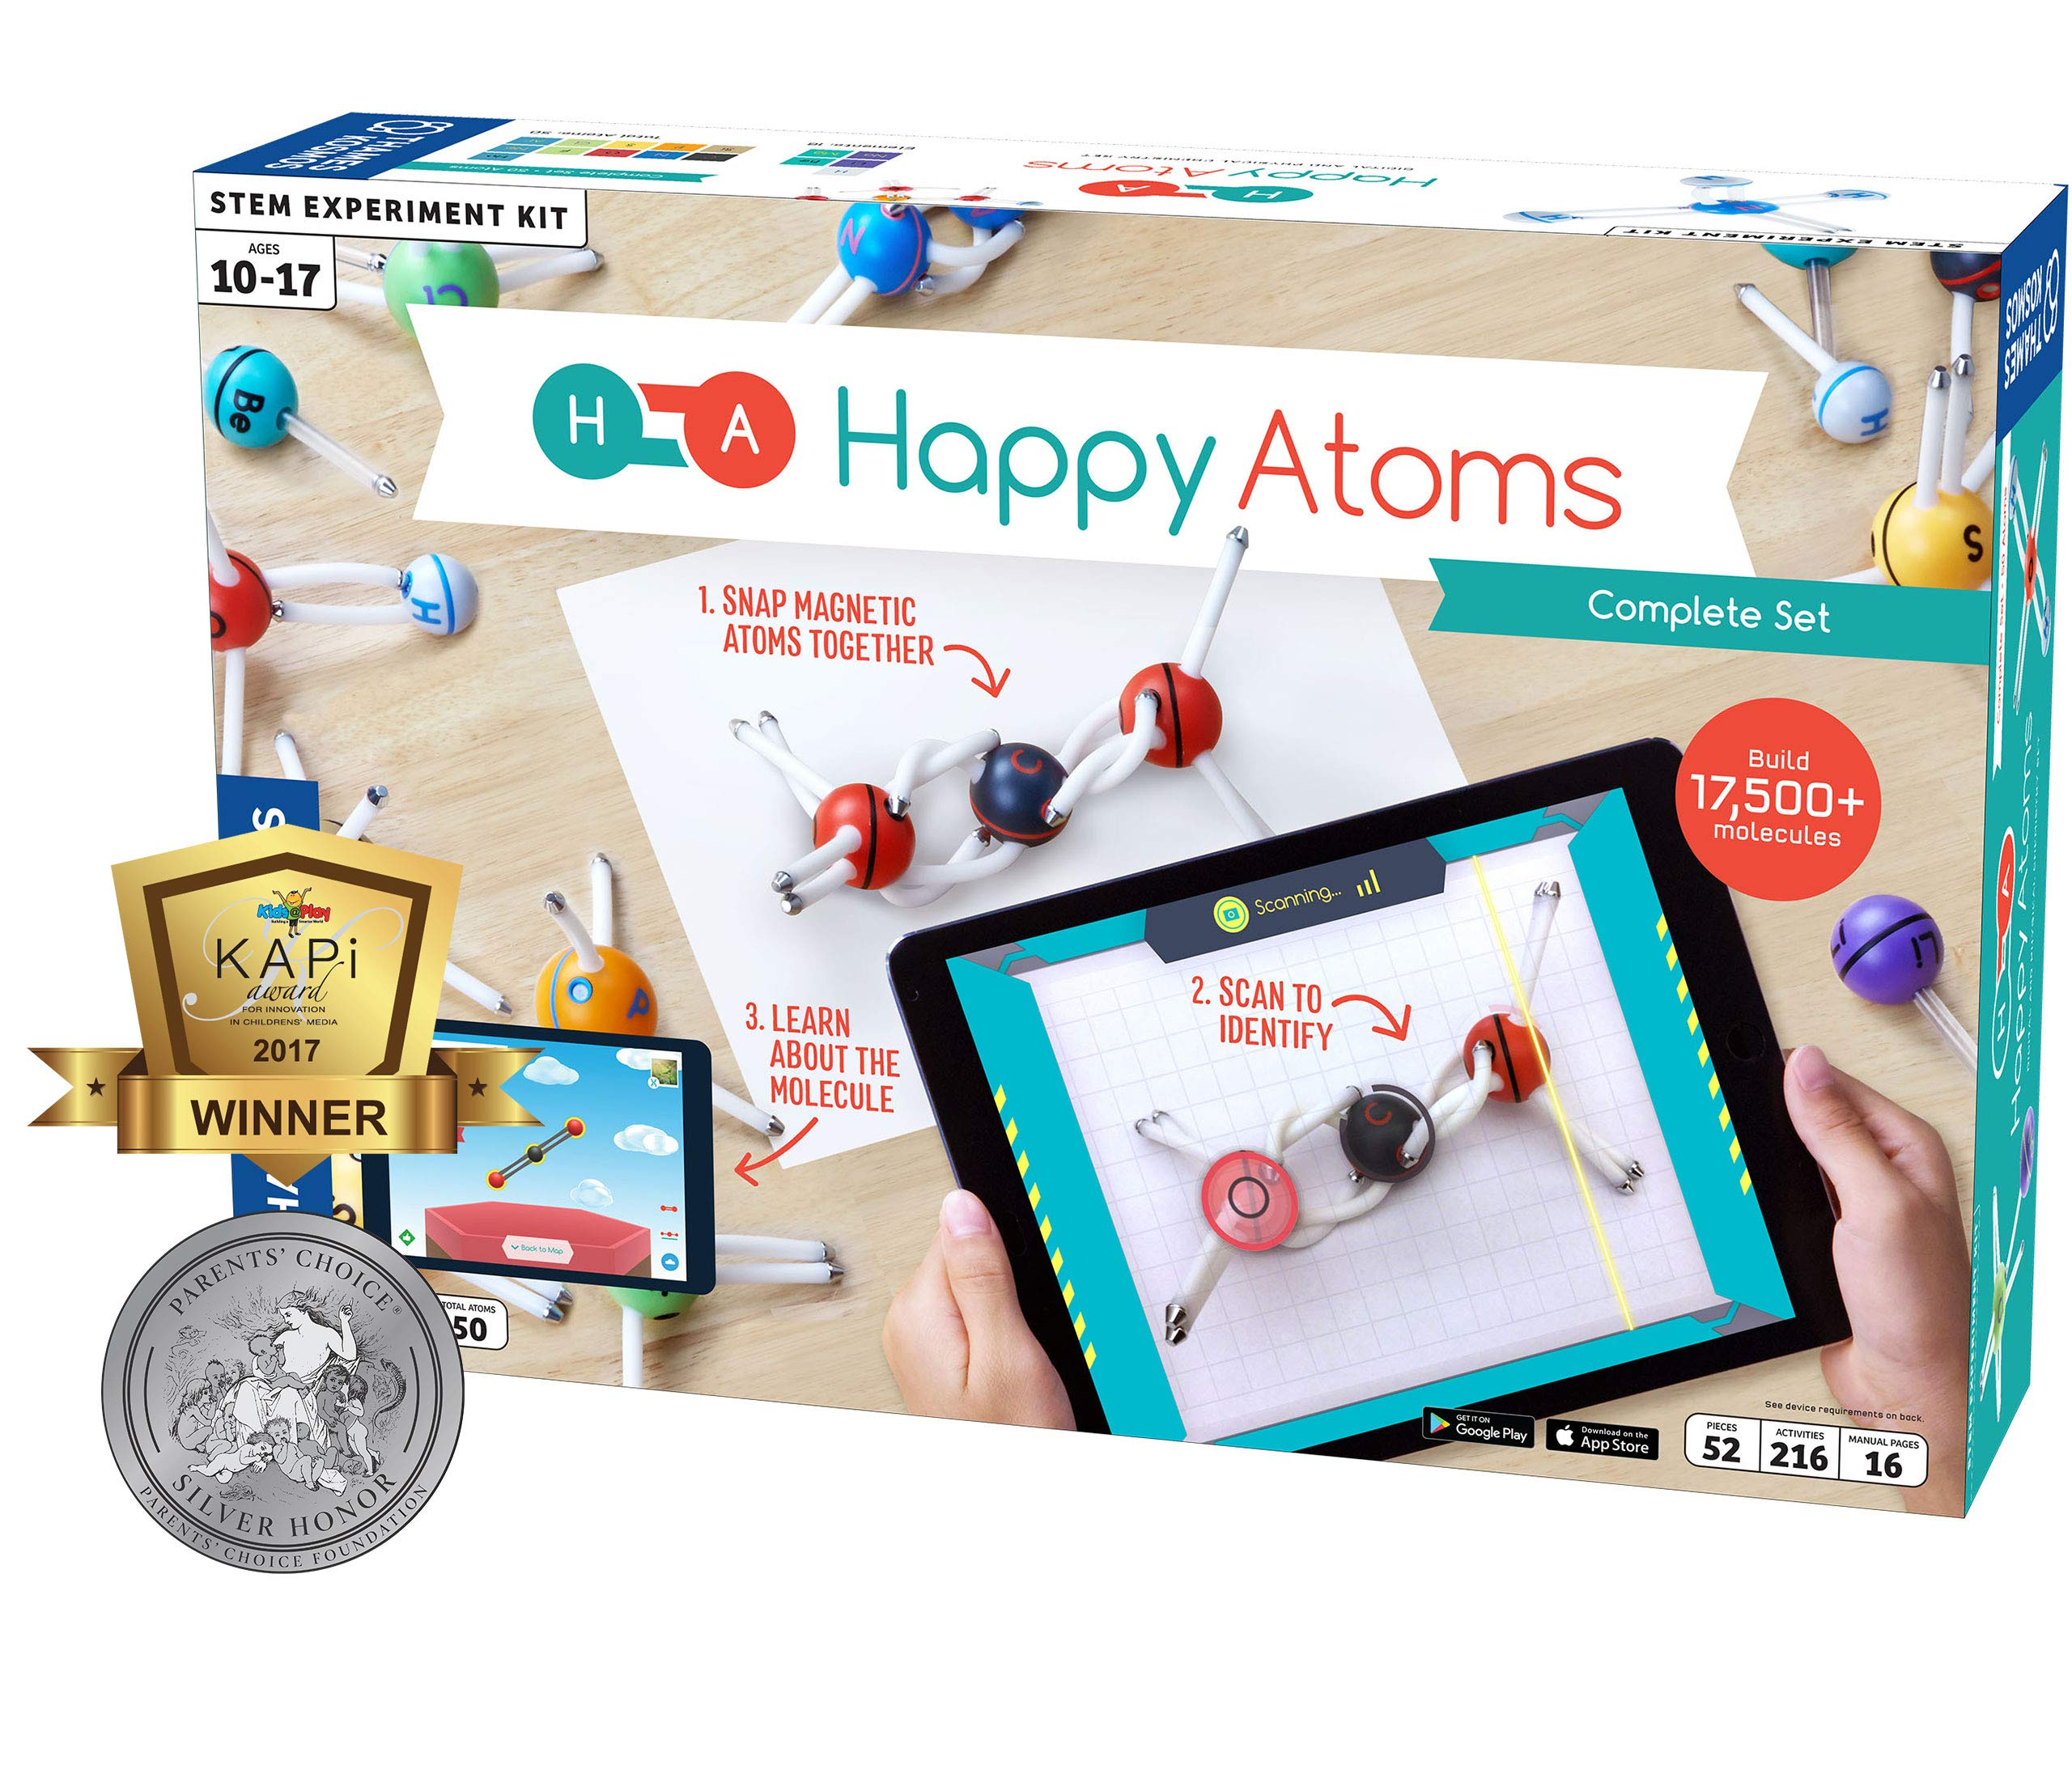 Happy Atoms Magnetic Molecular Modeling Complete Set | 50 Atoms | Create 17, 593 Molecules | 216 Activities | Free Educational App iOS, Android, Kindle | Student & Teacher Tested | KAPi Award Winner by Thames & Kosmos